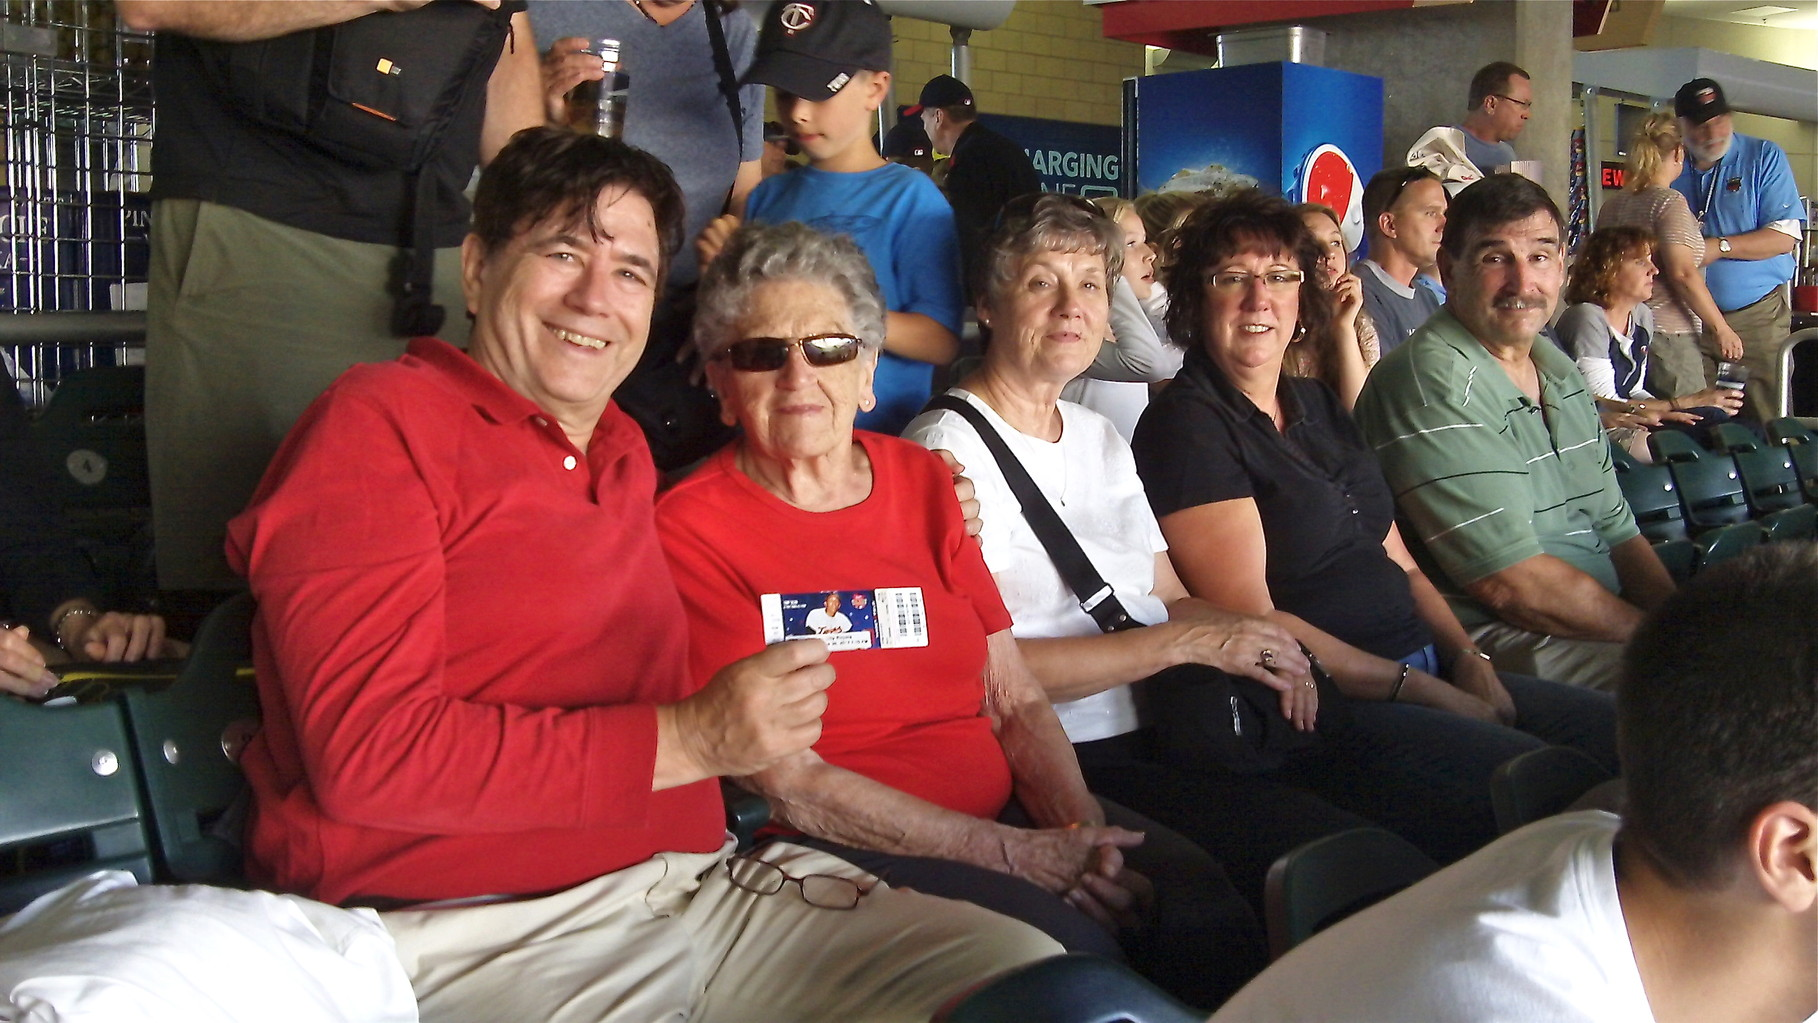 John, Mary Lou, Cindy, Jill & Paul at the game.